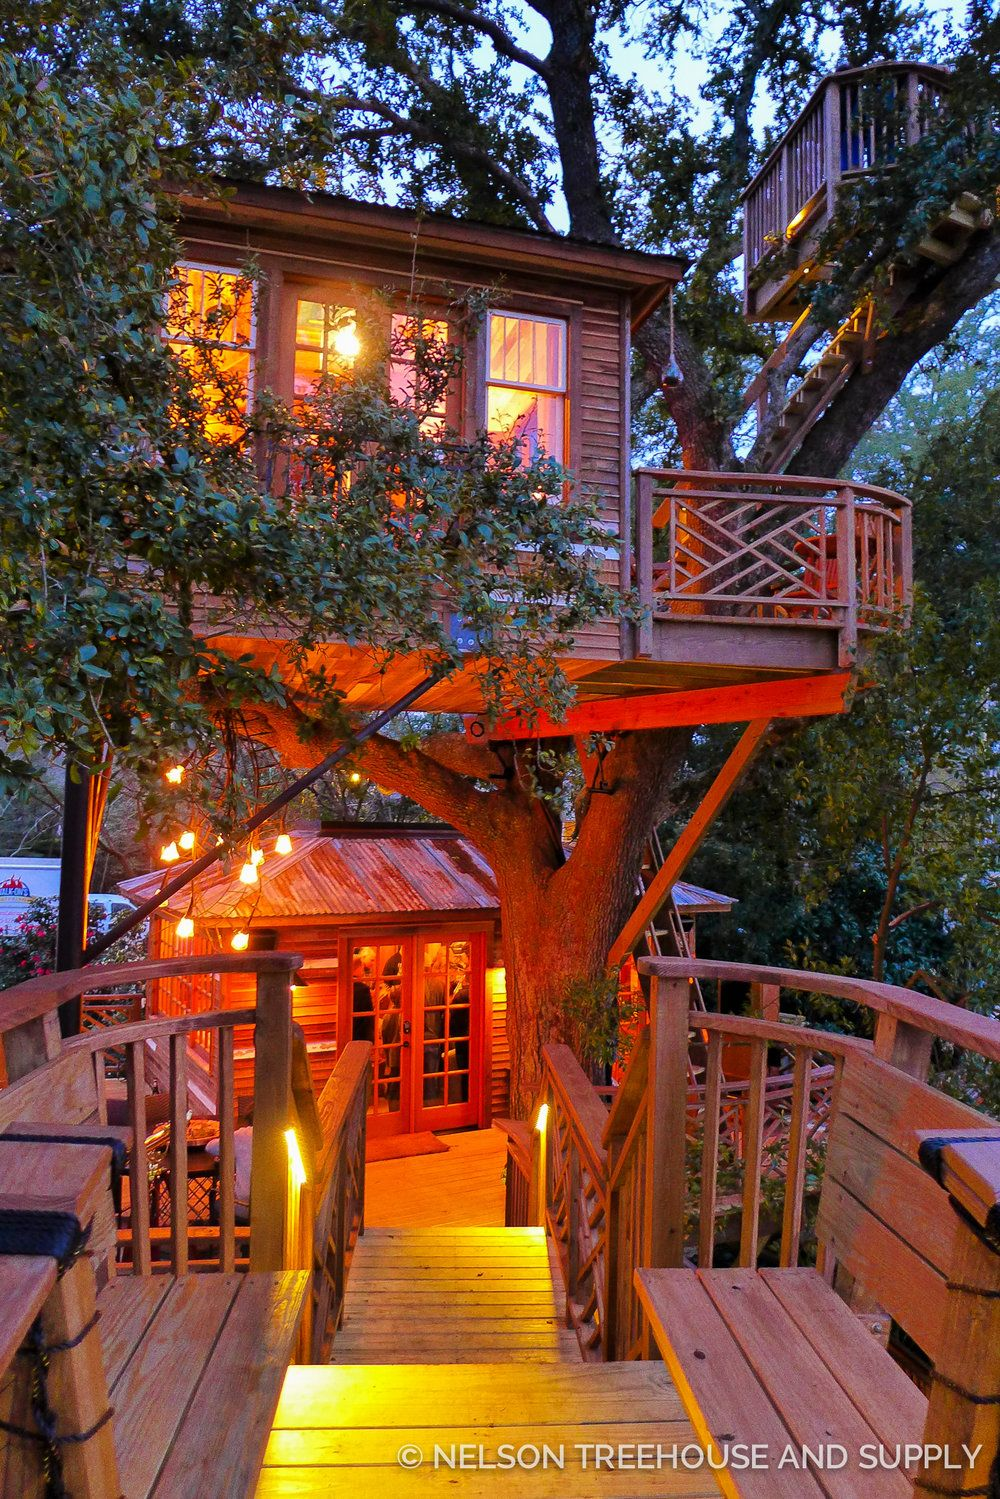 33 Amazing Ideas That Will Make Your House Awesome: 21 Unbeliavably Amazing Treehouse Ideas That Will Inspire You